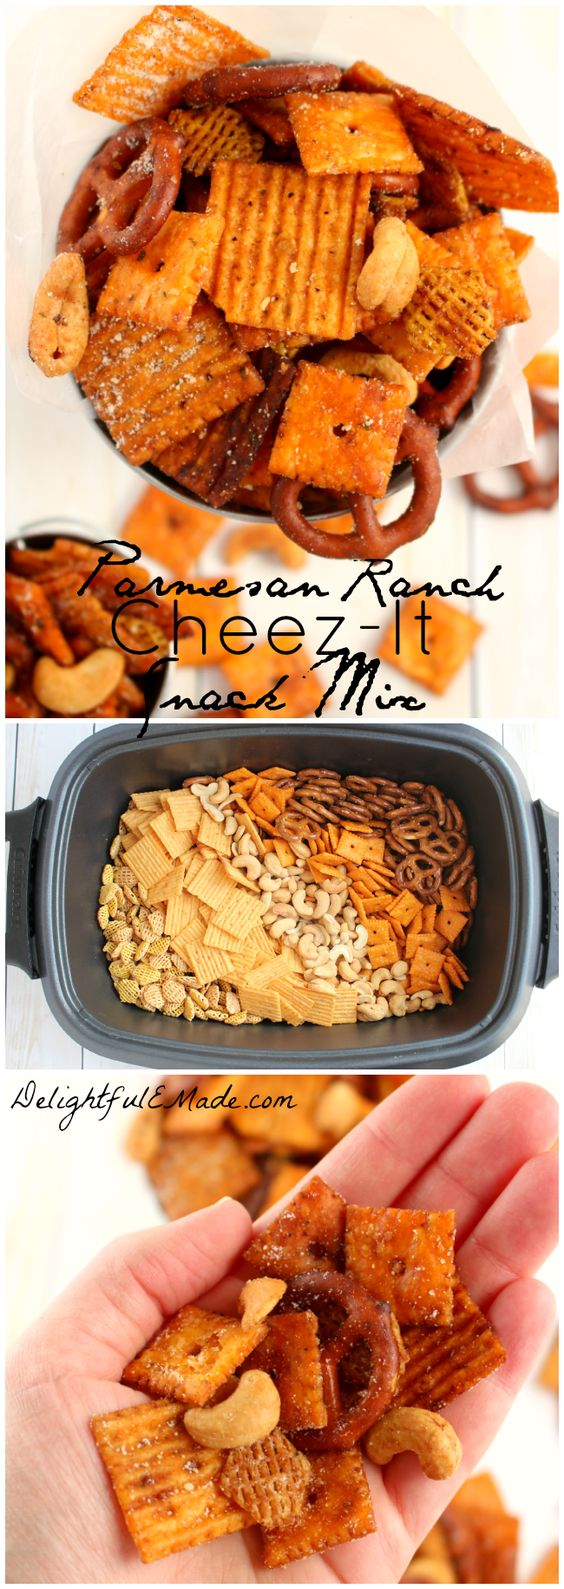 Crunchy, savory and completely irresistible! This crock pot snack mix is made with everyone's favorite Cheez-It crackers, cashews and a Parmesan ranch seasoning, its the perfect snack for any occasion! #MVCheezIt #ad: